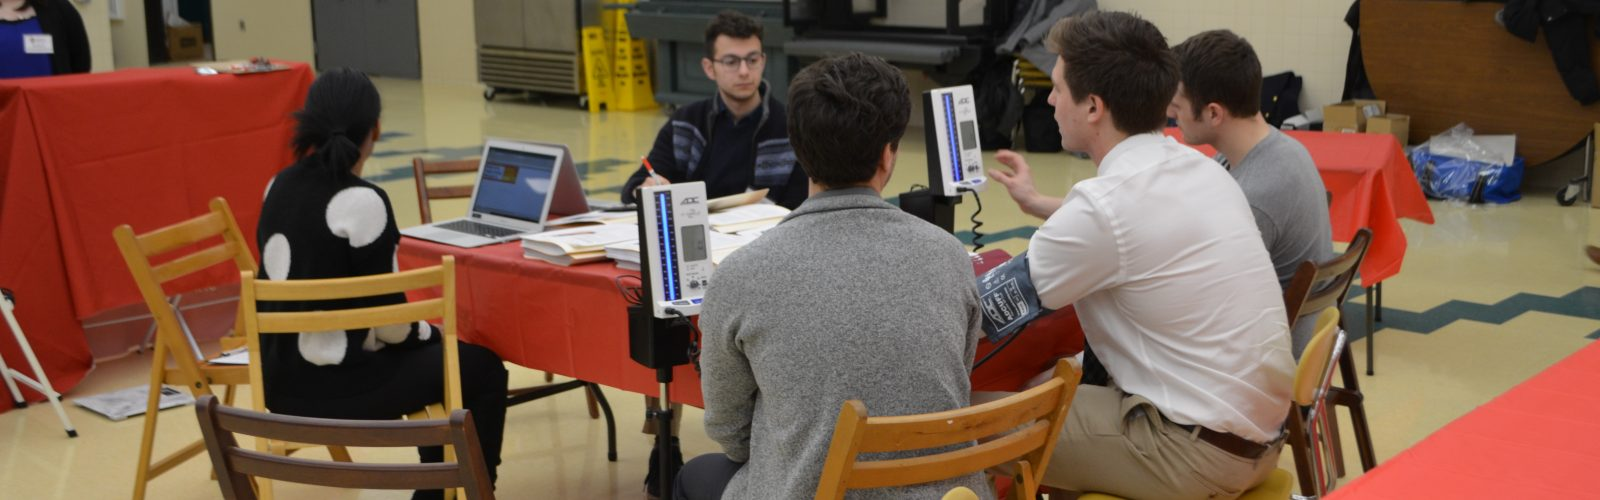 Health metrics being recorded at a health fair